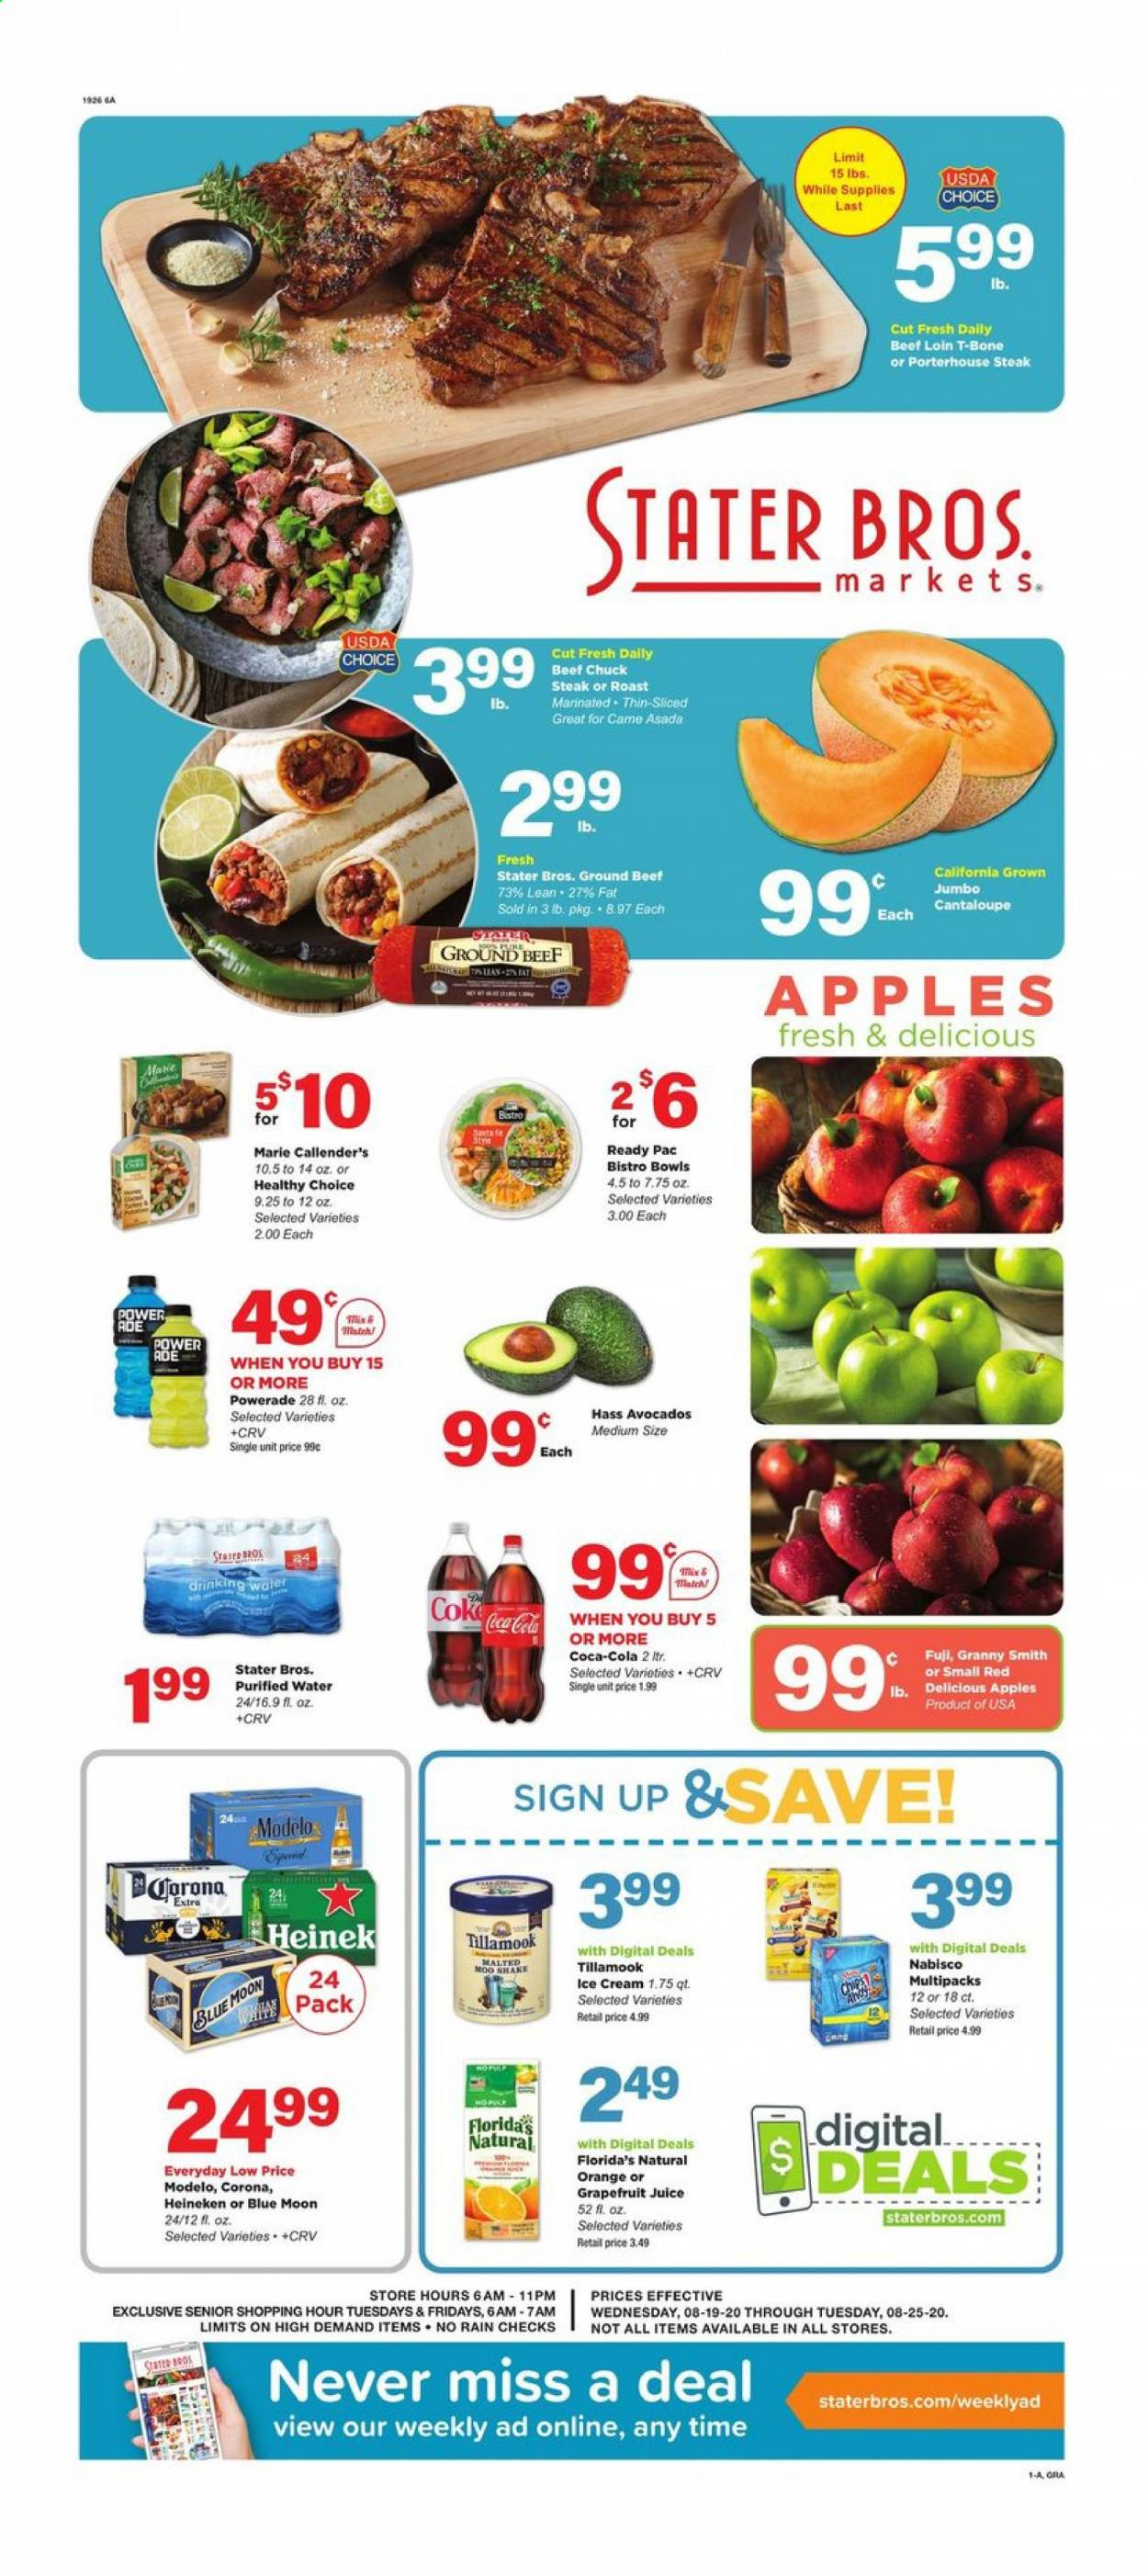 Stater Bros. Flyer - 08.19.2020 - 08.25.2020 - Sales products - apples, avocado, beef meat, cantaloupe, Coca-Cola, ground beef, red delicious, ice cream, powerade, orange, steak, juice, corona, Blue Moon, purified water, Apple. Page 1.